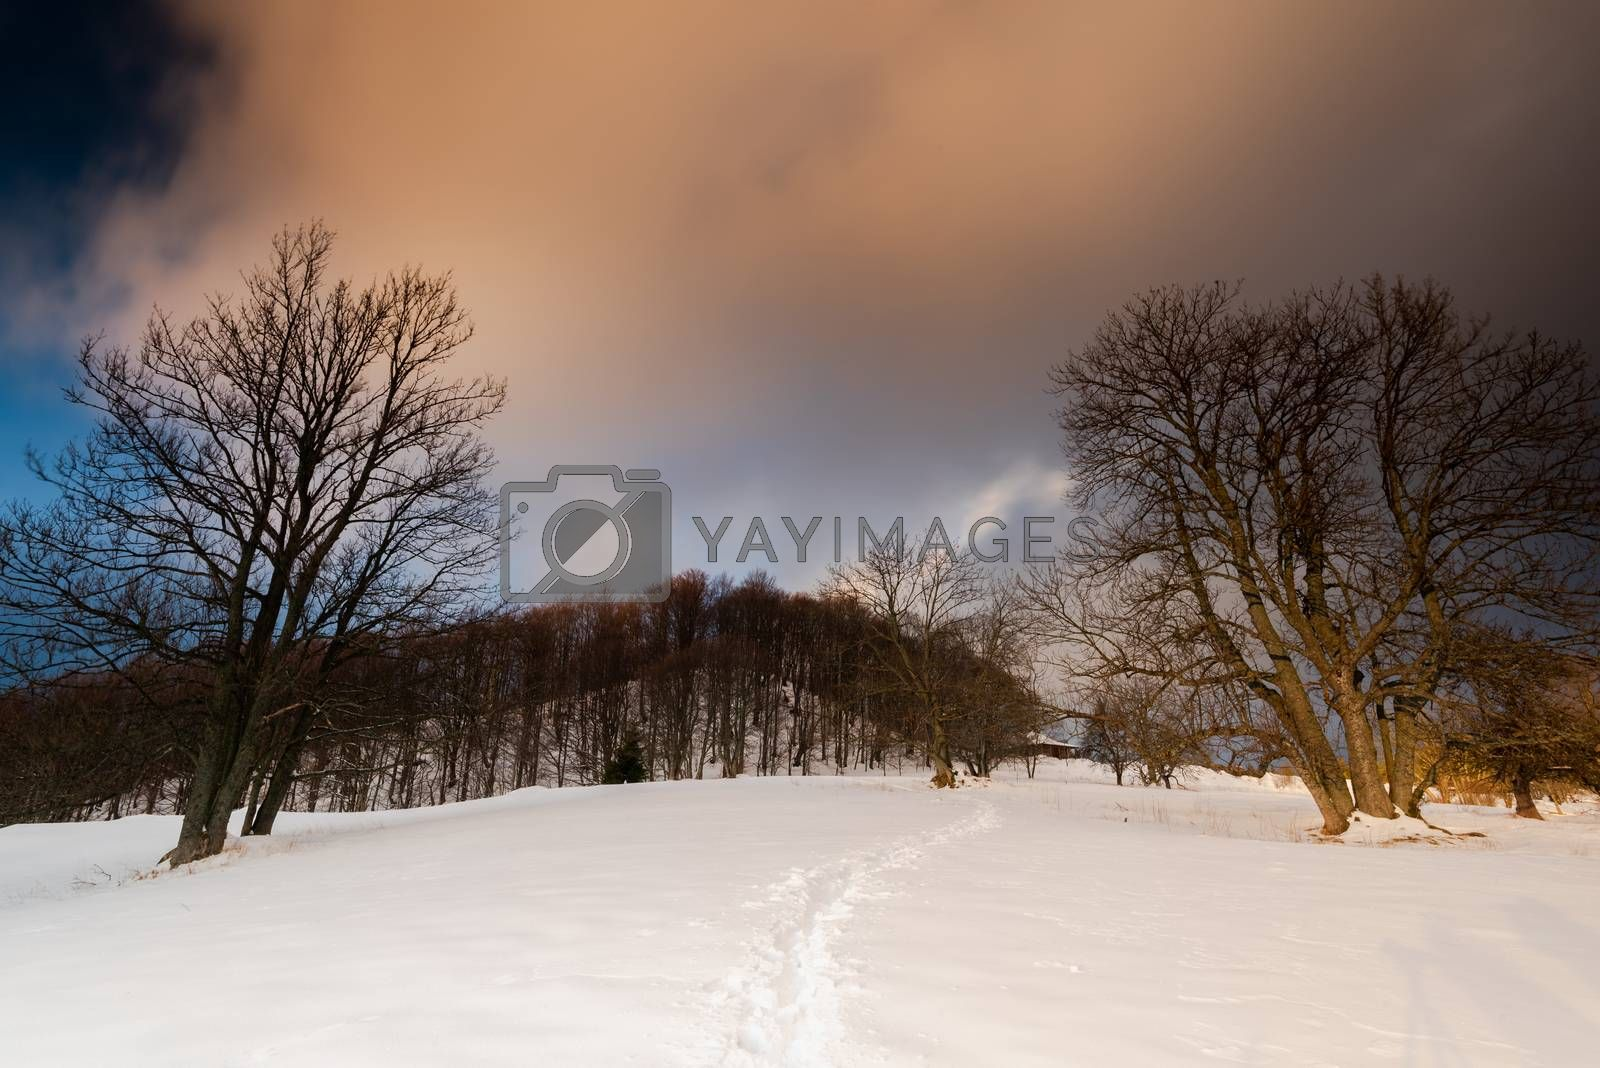 Trial in Snow in Carpathia Mountains at Winter Season by merc67